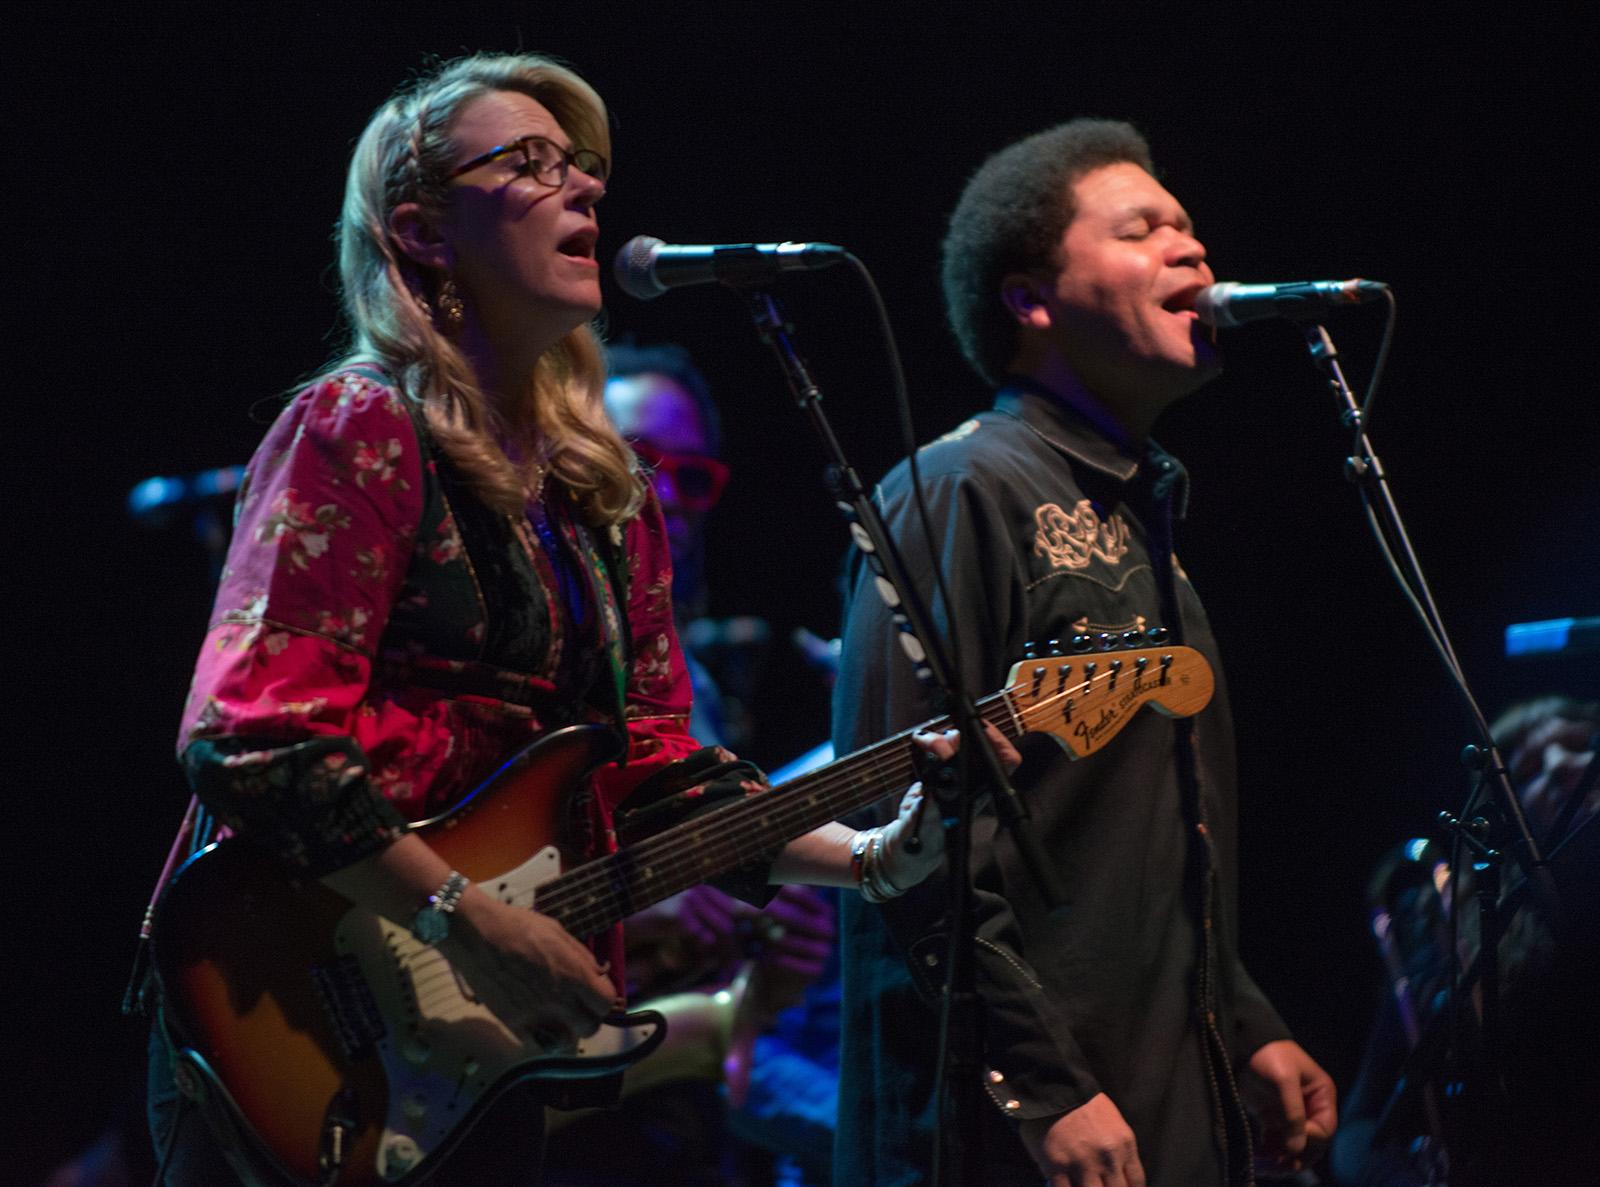 The Grammy-winning Tedeschi Trucks Band started off their 2017-18 nationwide tour Friday with a sold-out performance at Portland's Keller Auditorium, bringing the house down with a power-packed set of hits showcasing guitarist Derek Trucks' incredible talents along with the stunning vocal work of Susan Tedeschi. The couple was joined onstage by an incredibly talented 12-piece band for a memorable performance in Portland. (KATU Photo taken 11-3-2017 by Trisan Fortsch)